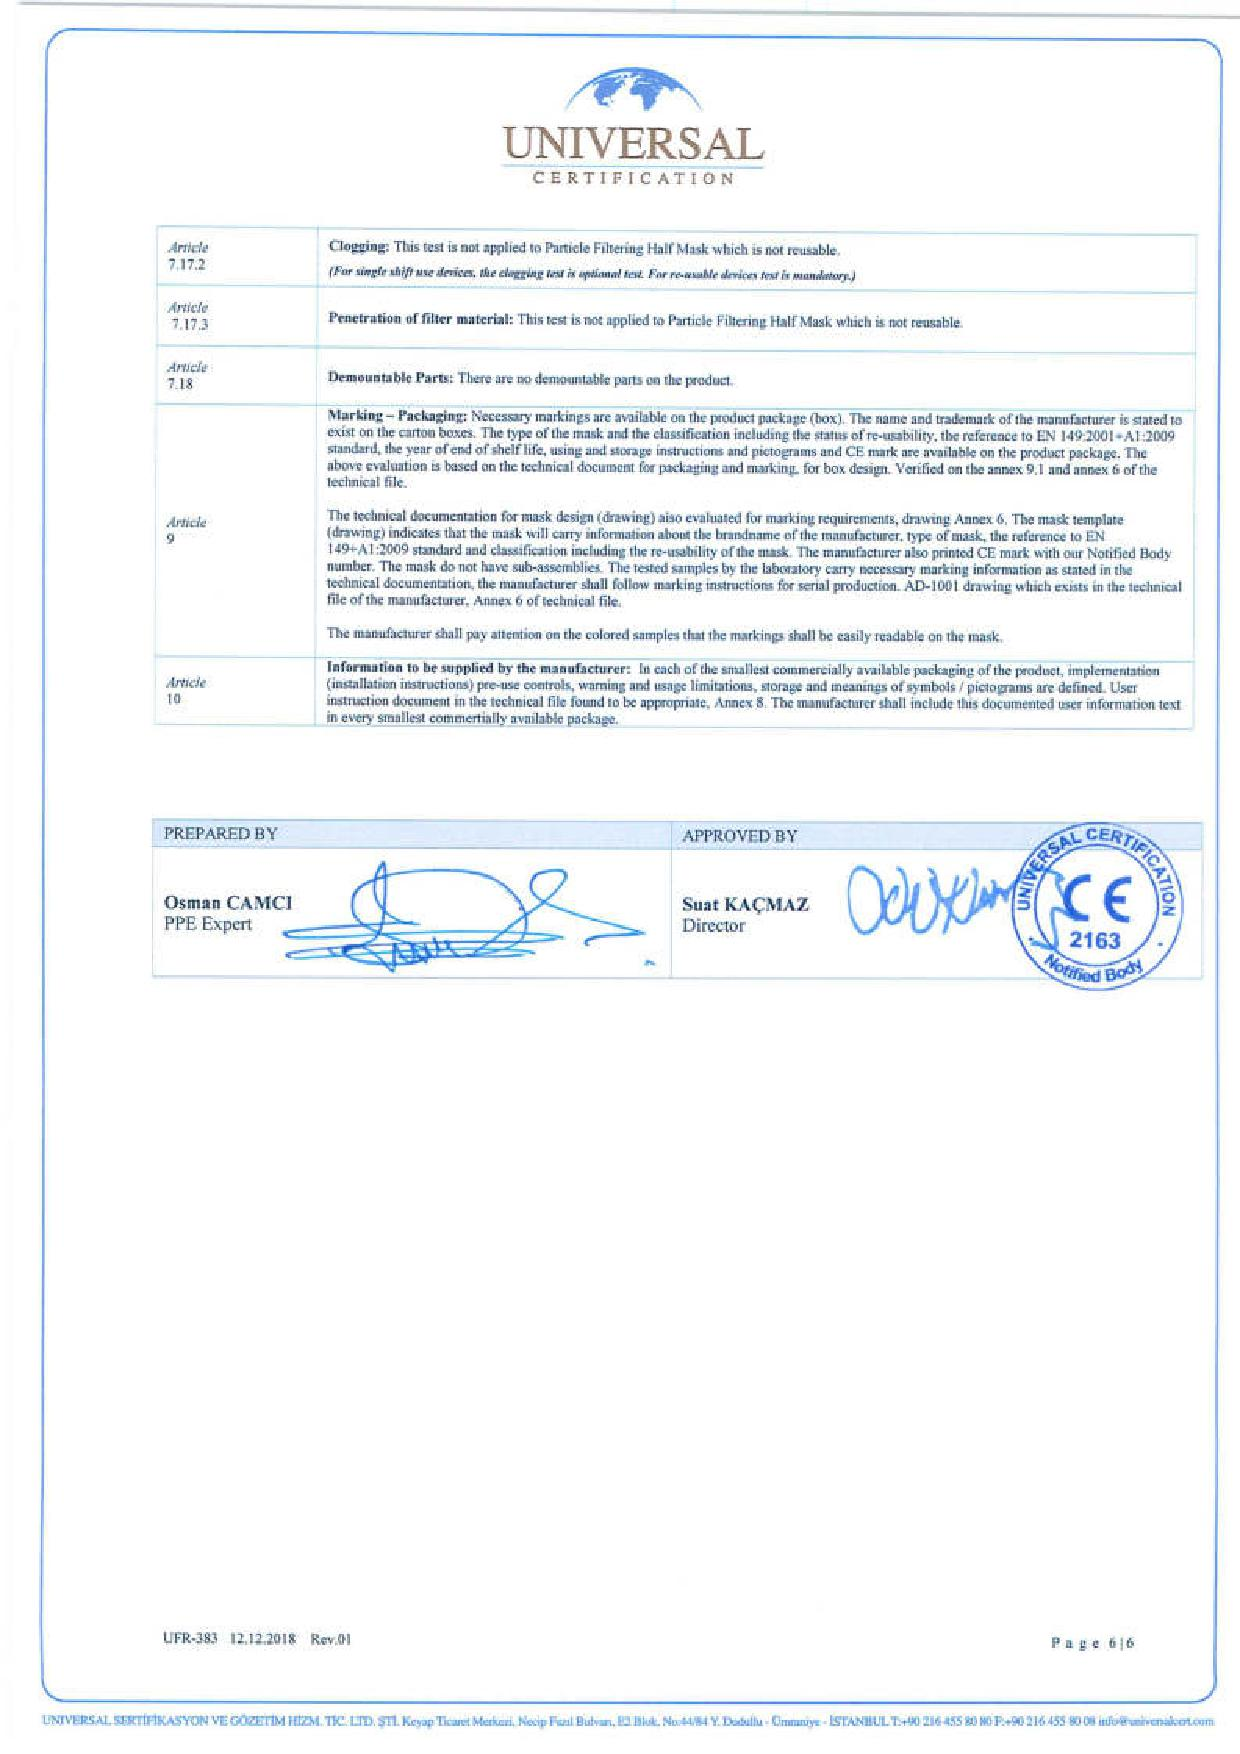 Certificate_AnDum_Email_Bunt-page-008.jpg